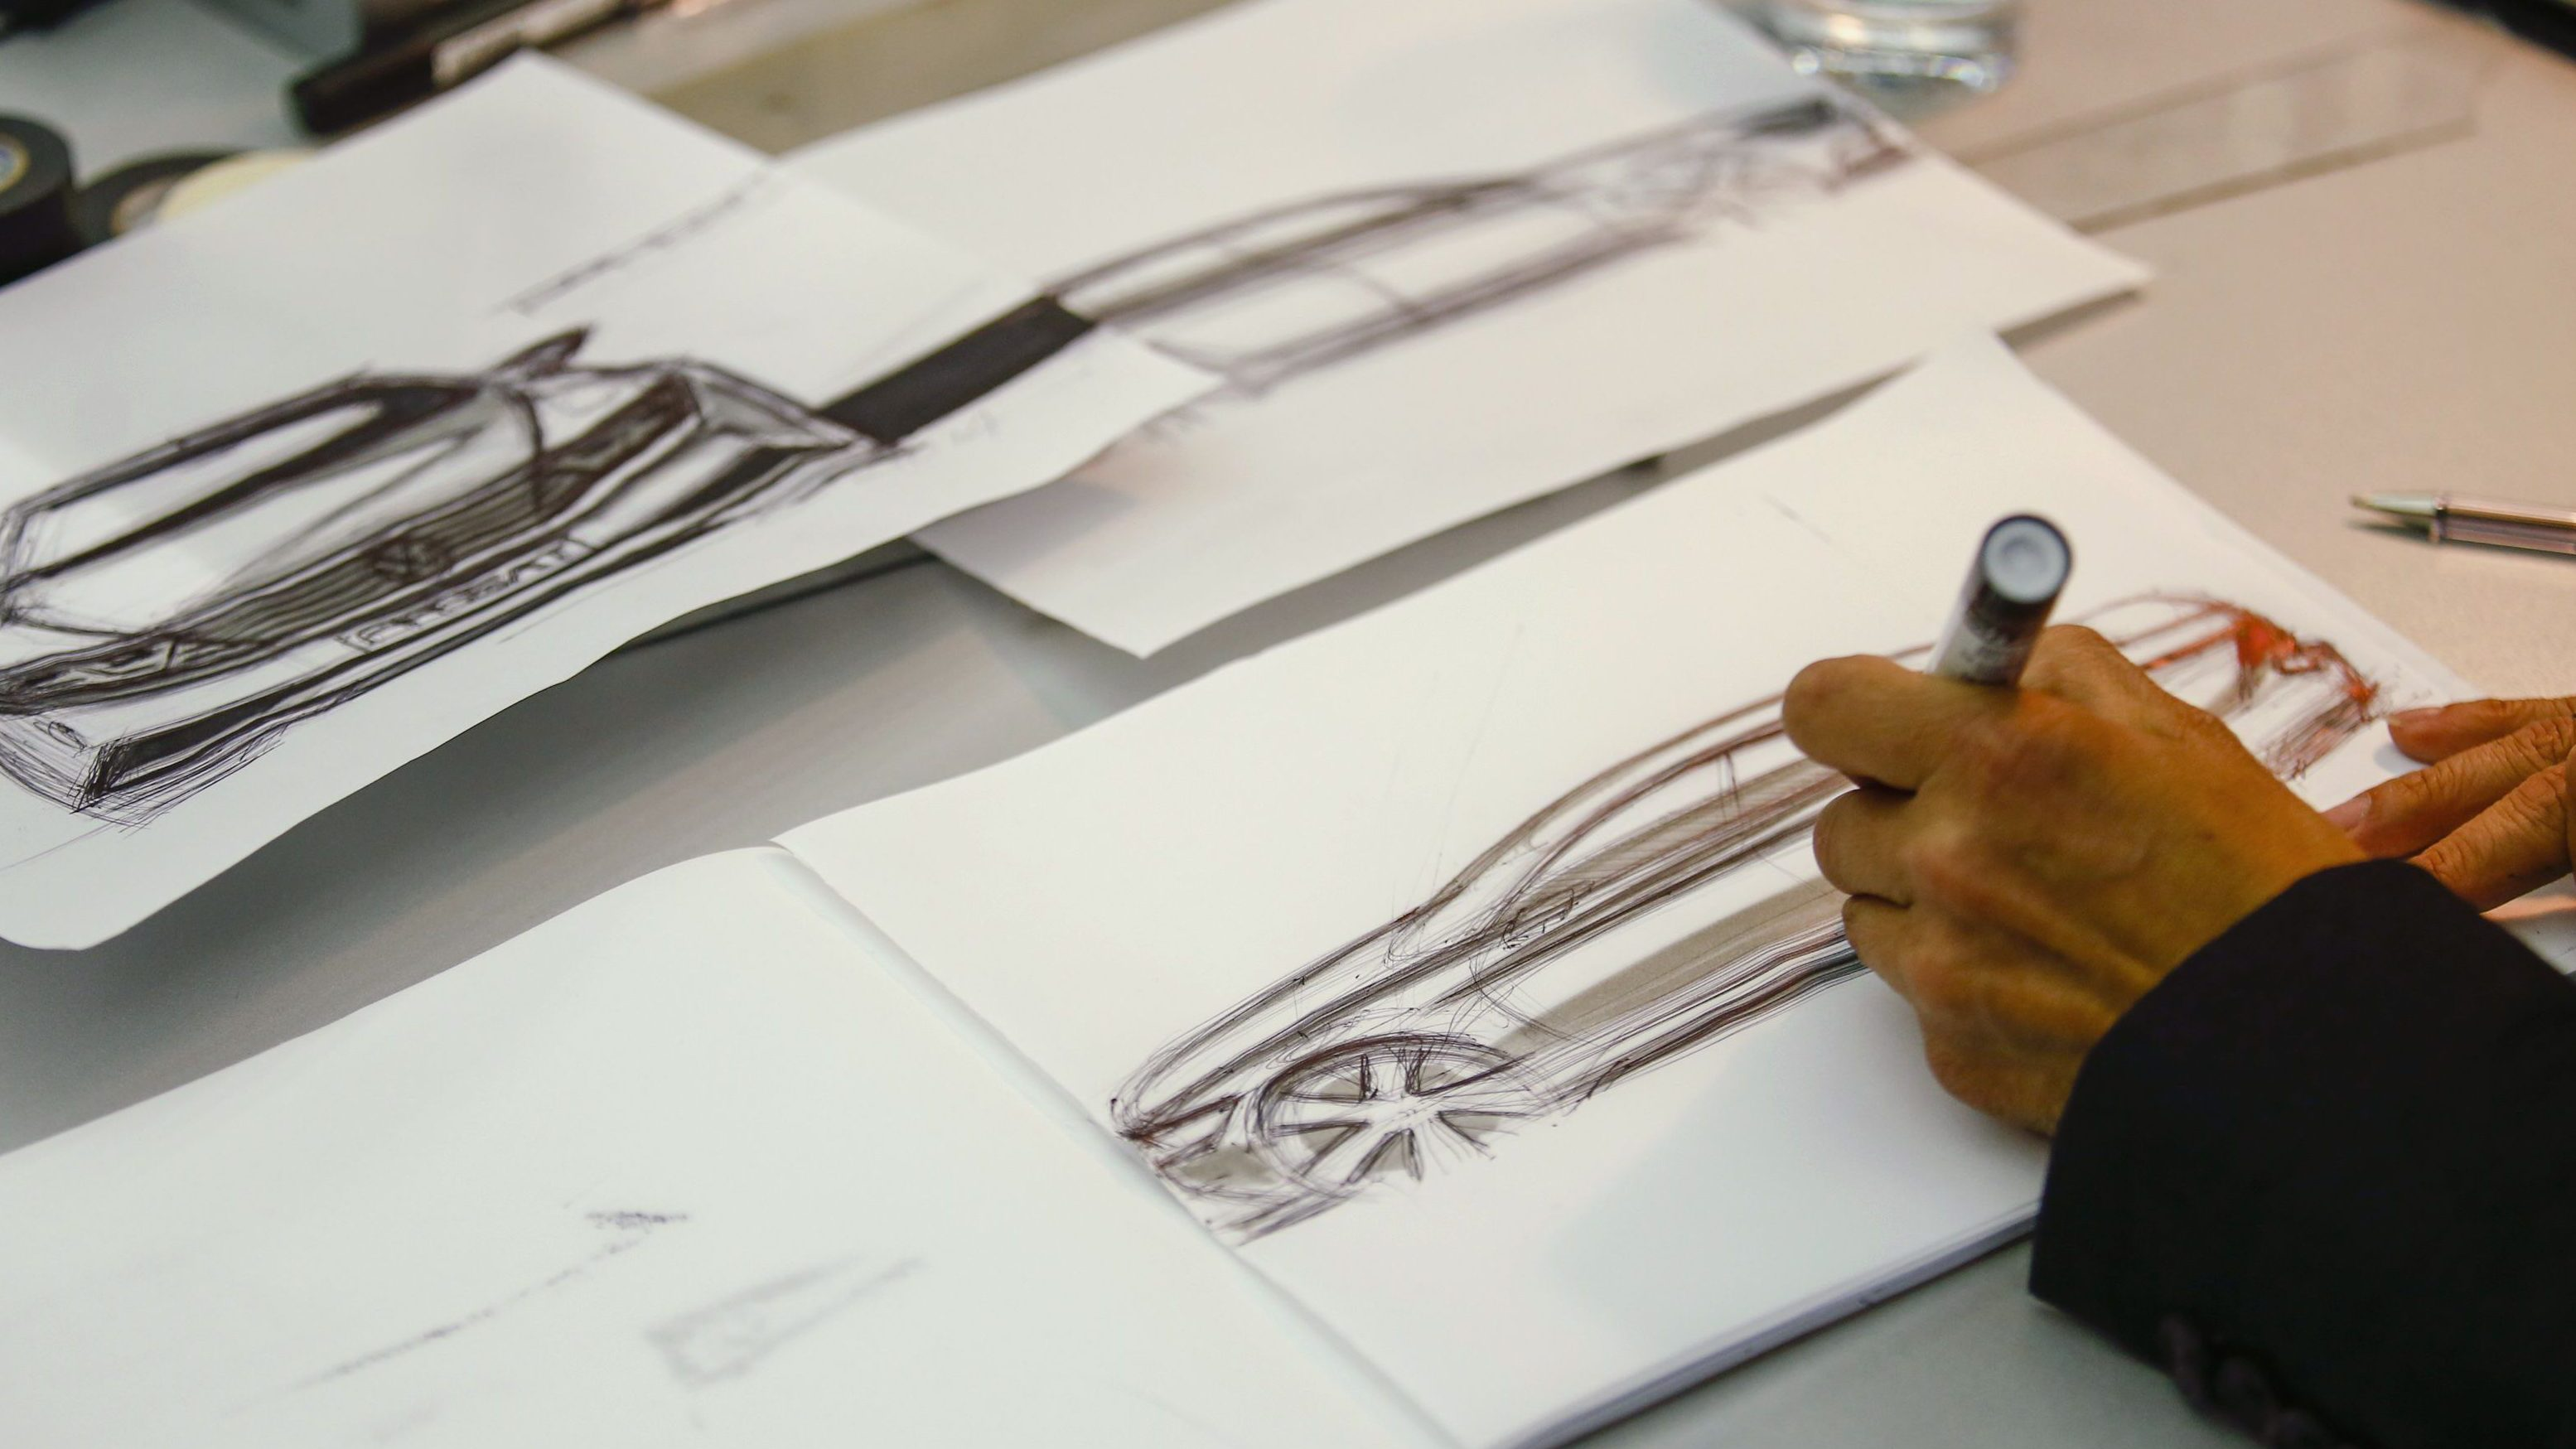 A man drafts a sketch of a car in a showcase design studio at the fringes of a launch ceremony presenting the new Volkswagen Passat at the Volkswagen Design Center Potsdam July 3, 2014. Volkswagen is steering the Passat upscale, aiming to lift its No.2 selling model clear of a struggling market for mid-priced cars without alienating its core family customers. At about 26,000 euros ($35,500), it will be priced only slightly above the current version, a company source said, but come in below BMW's 3-Series at 29,350 euros and the Mercedes-Benz C-Class at 33,558 euros.   REUTERS/Thomas Peter (GERMANY - Tags: TRANSPORT BUSINESS) - RTR3X101